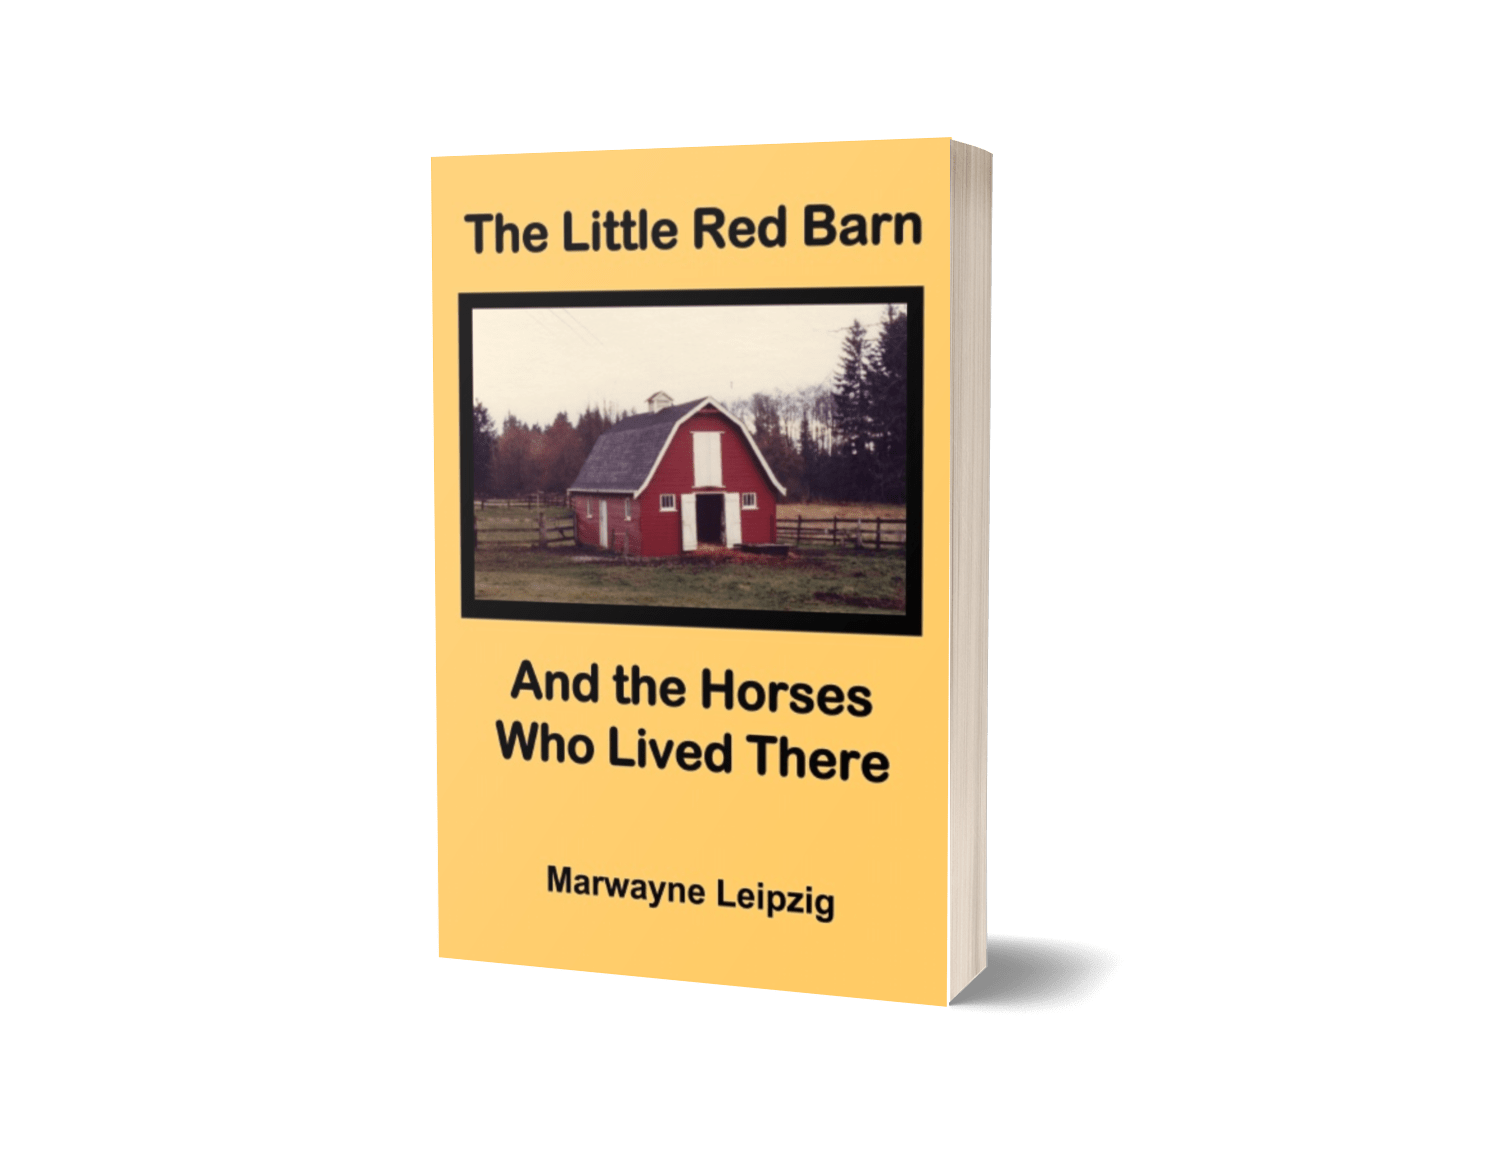 The Little Red Barn And the Horses Who Lived There